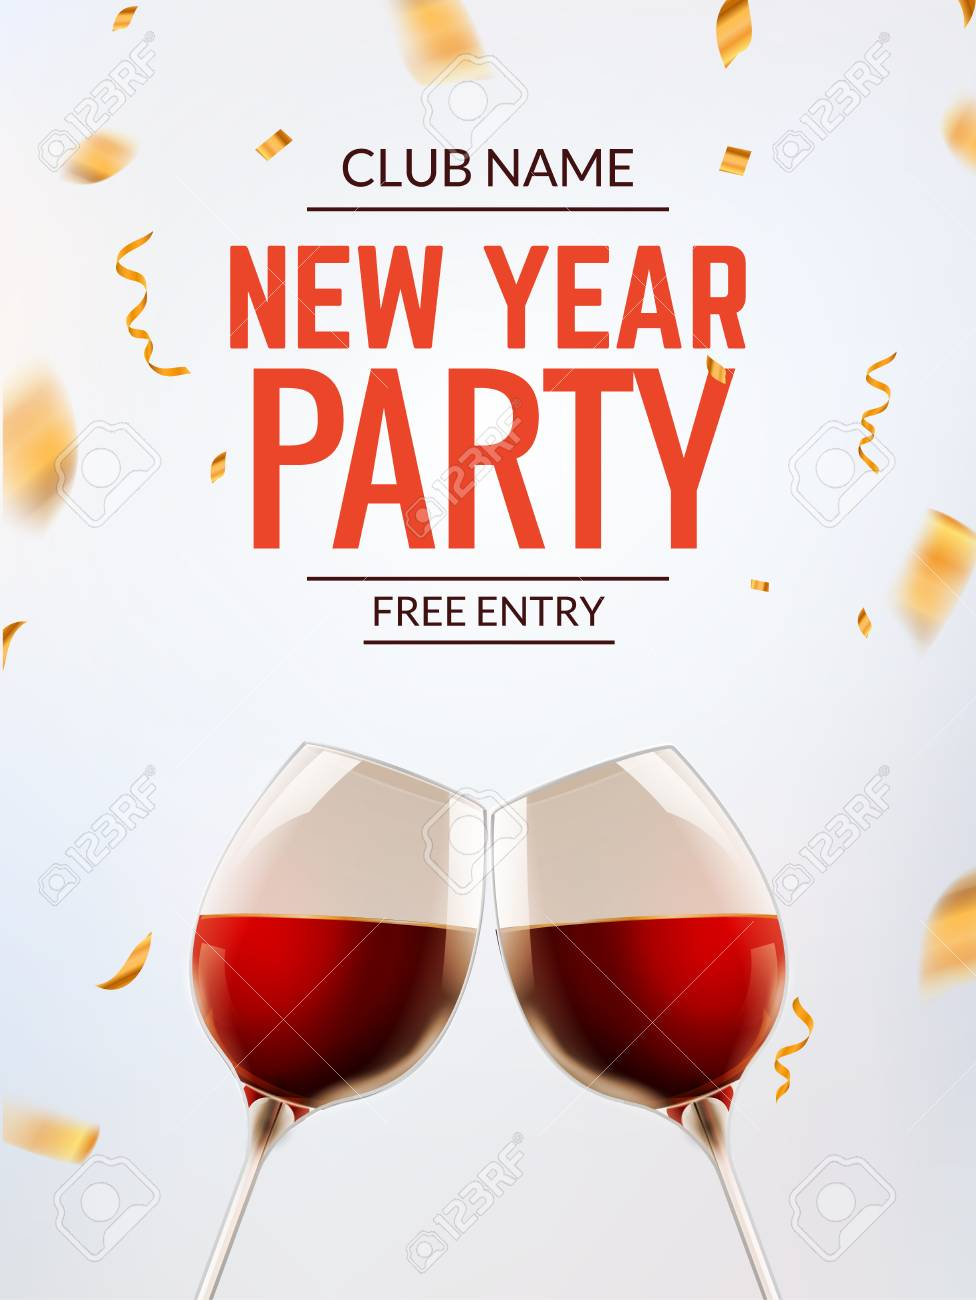 New Year Party Celebration Card Invitation Template Vector Royalty ...